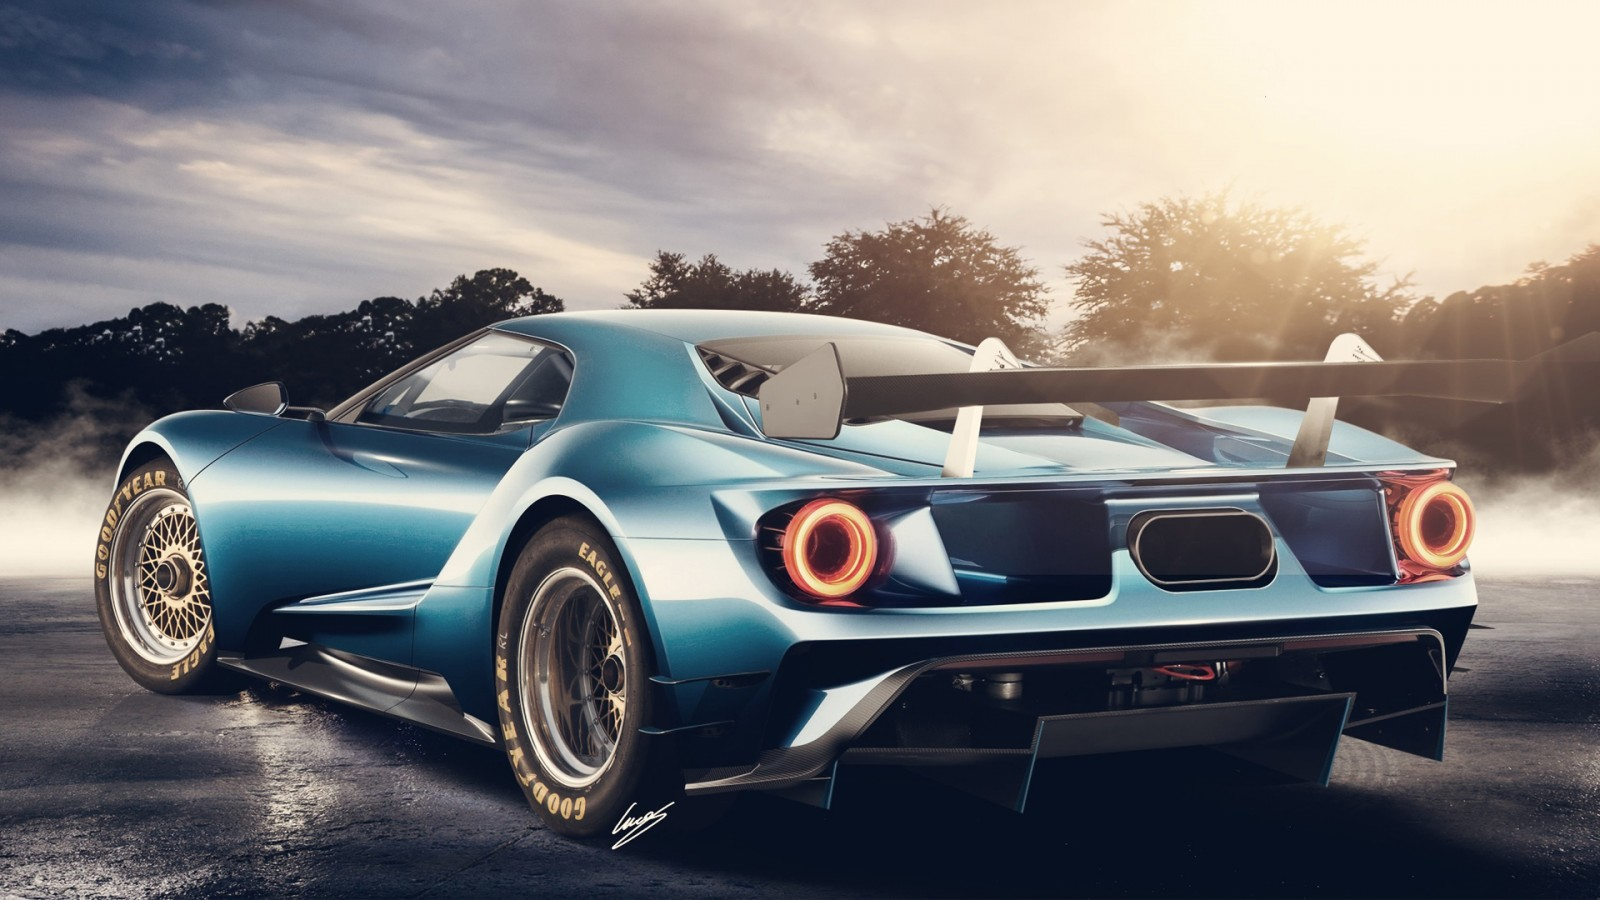 2017 ford gt hd - photo #13